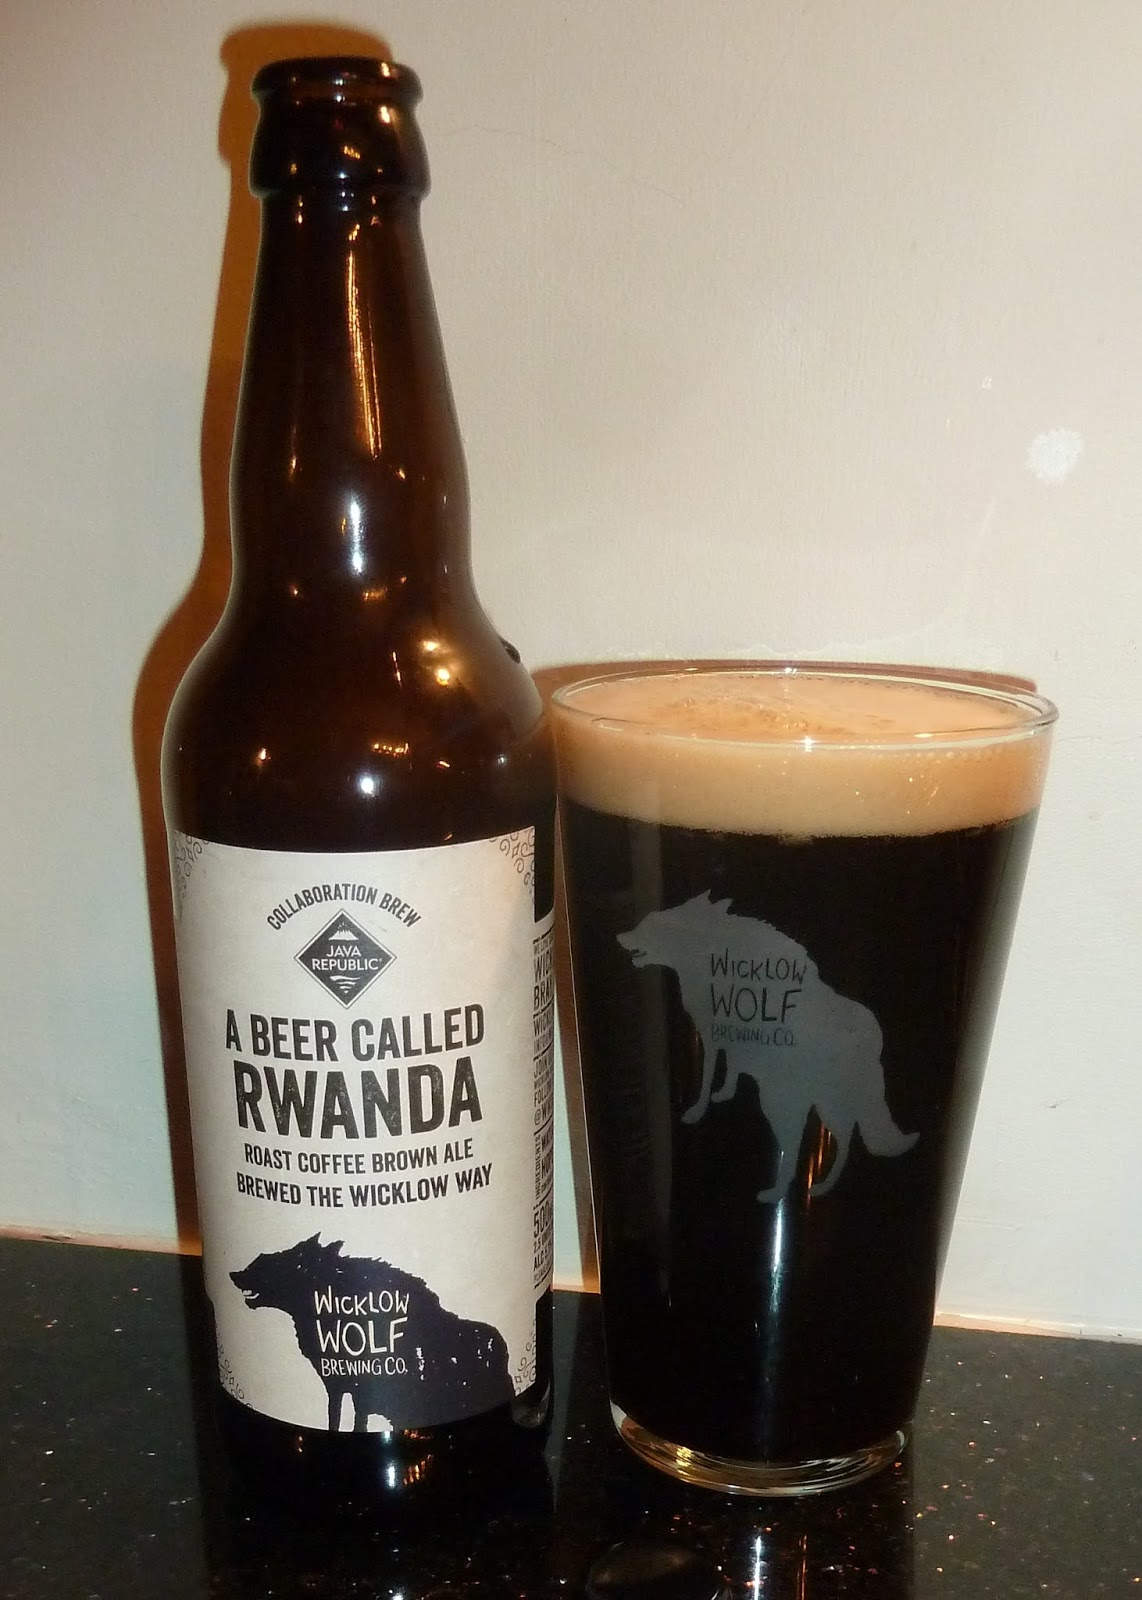 4a14ace3ce Staying on the dark-and-flavoured theme, A Beer Called Rwanda is a brown  ale with coffee from Wicklow Wolf. Personally I prefer getting my brown  beer coffee ...